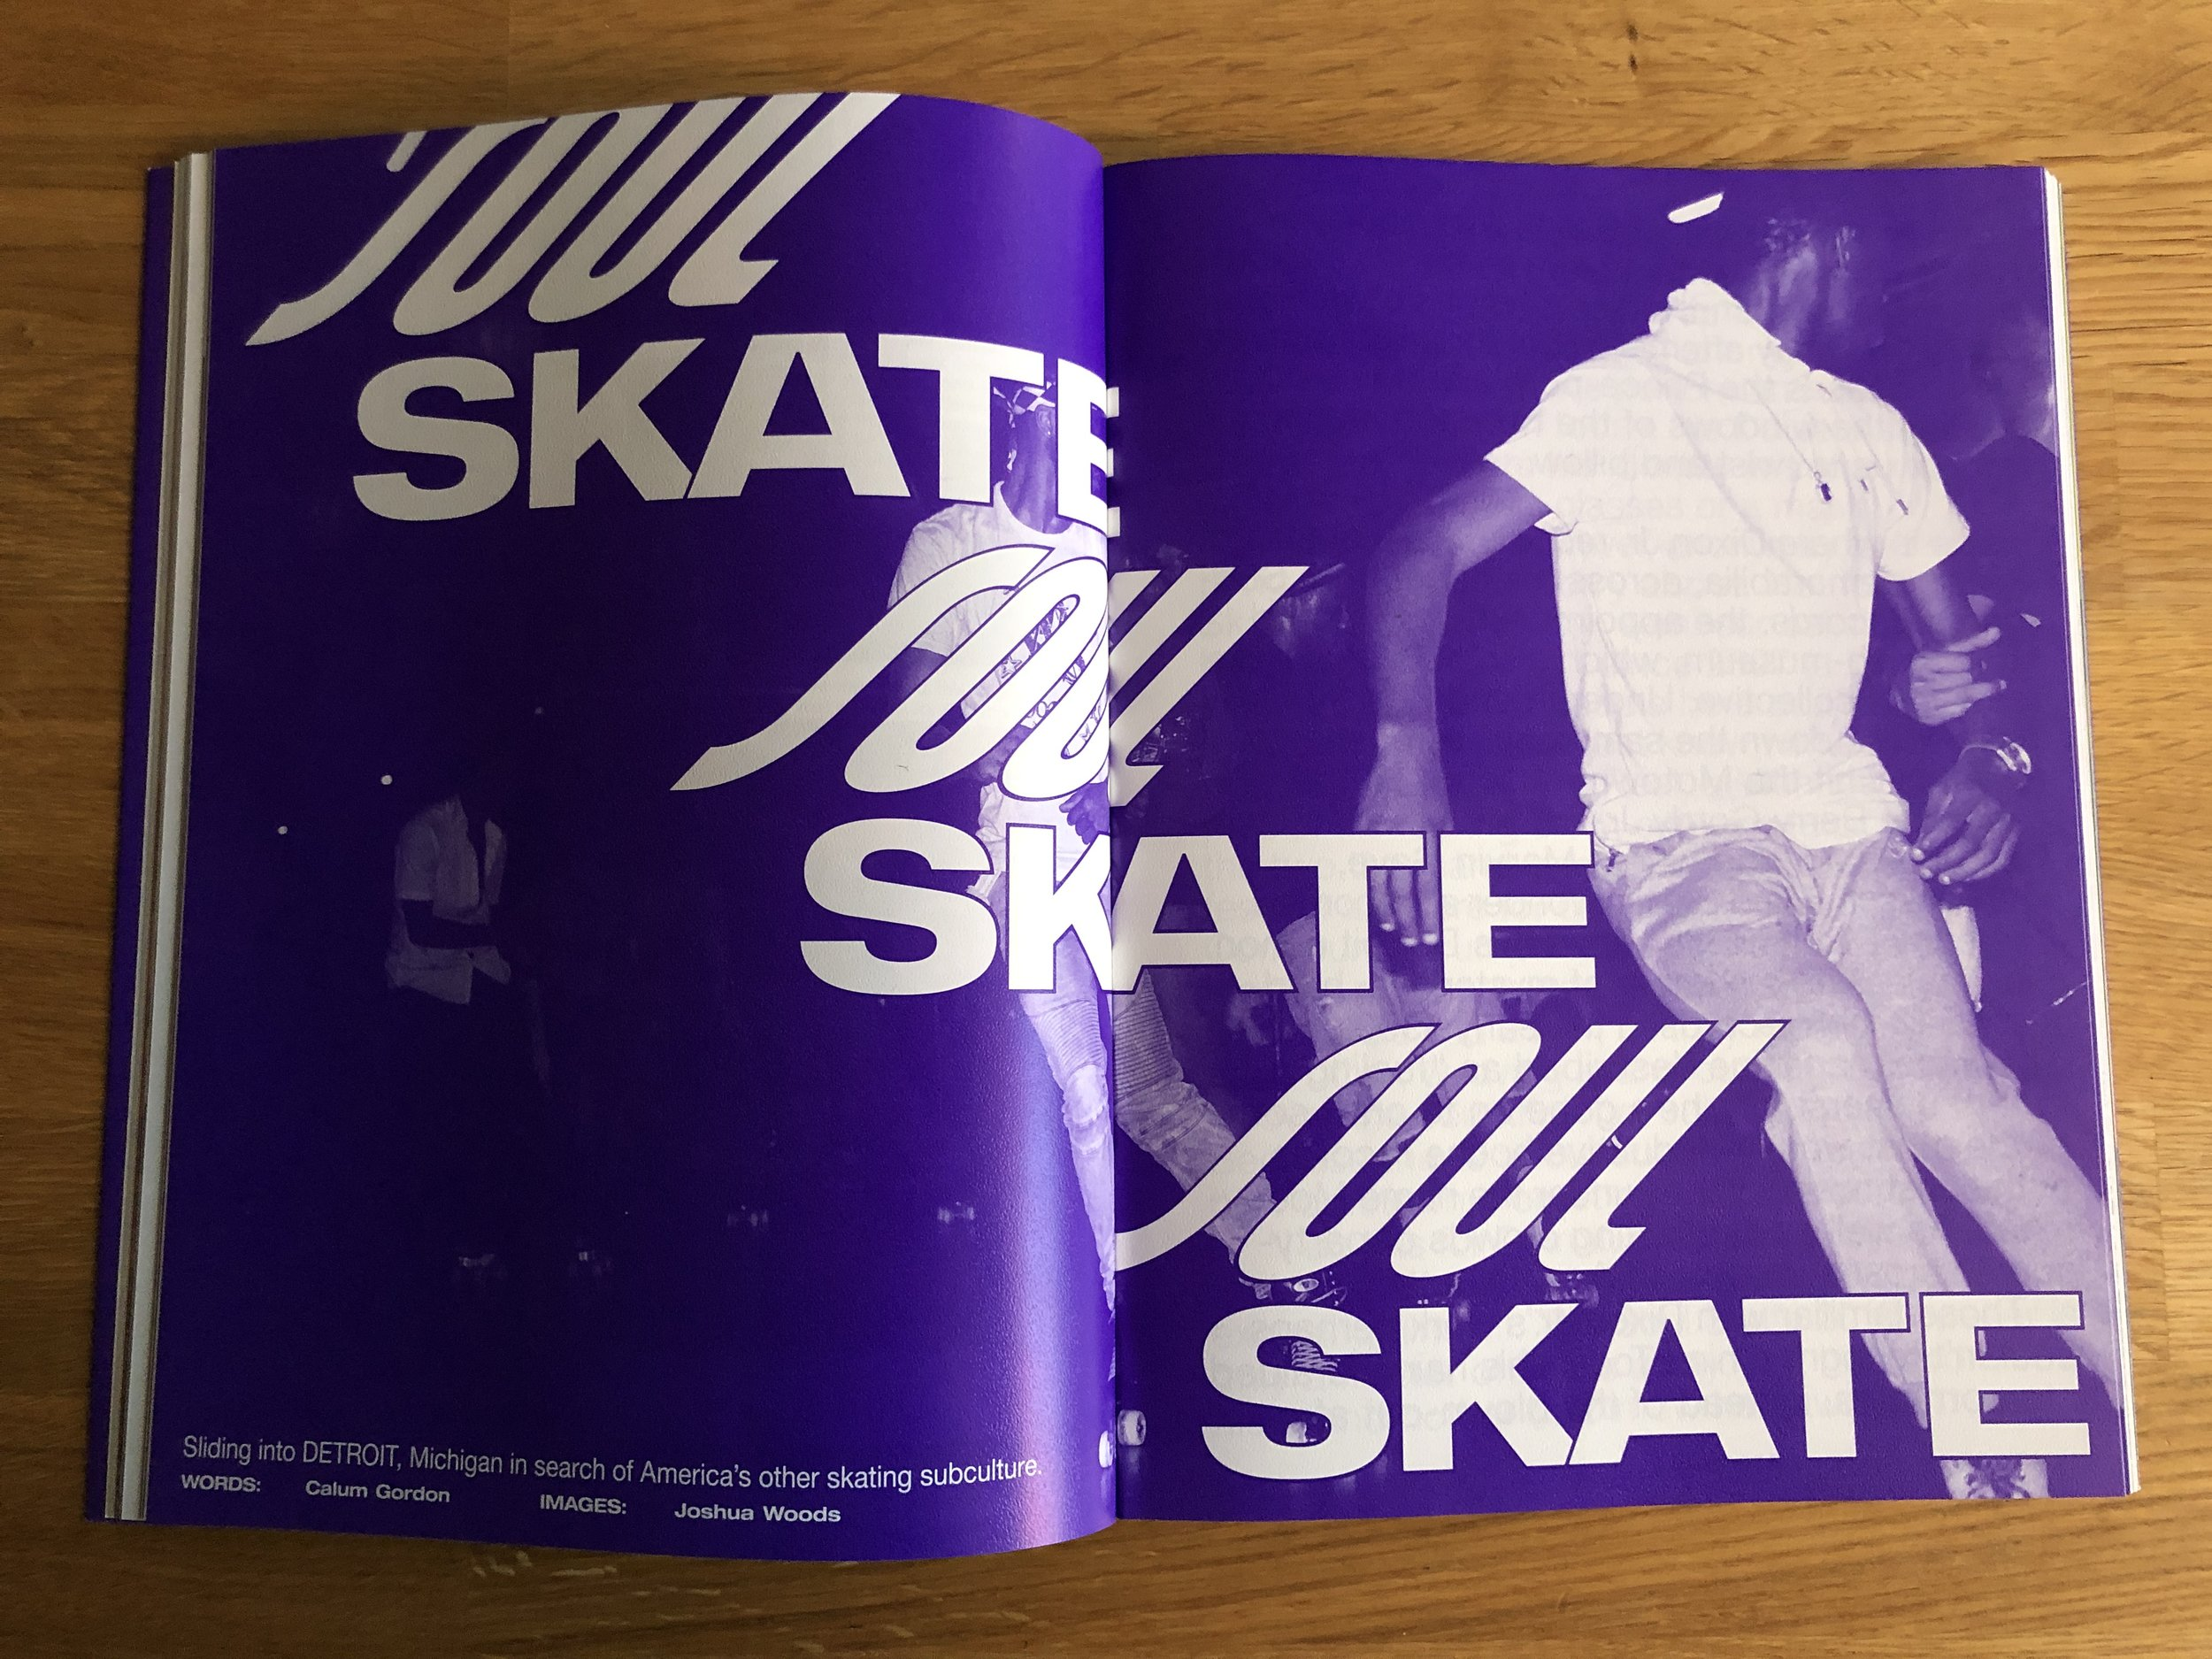 Carhartt Work in Progress presents Soul Skate Bi- Annual Roller Skating Festival 2018